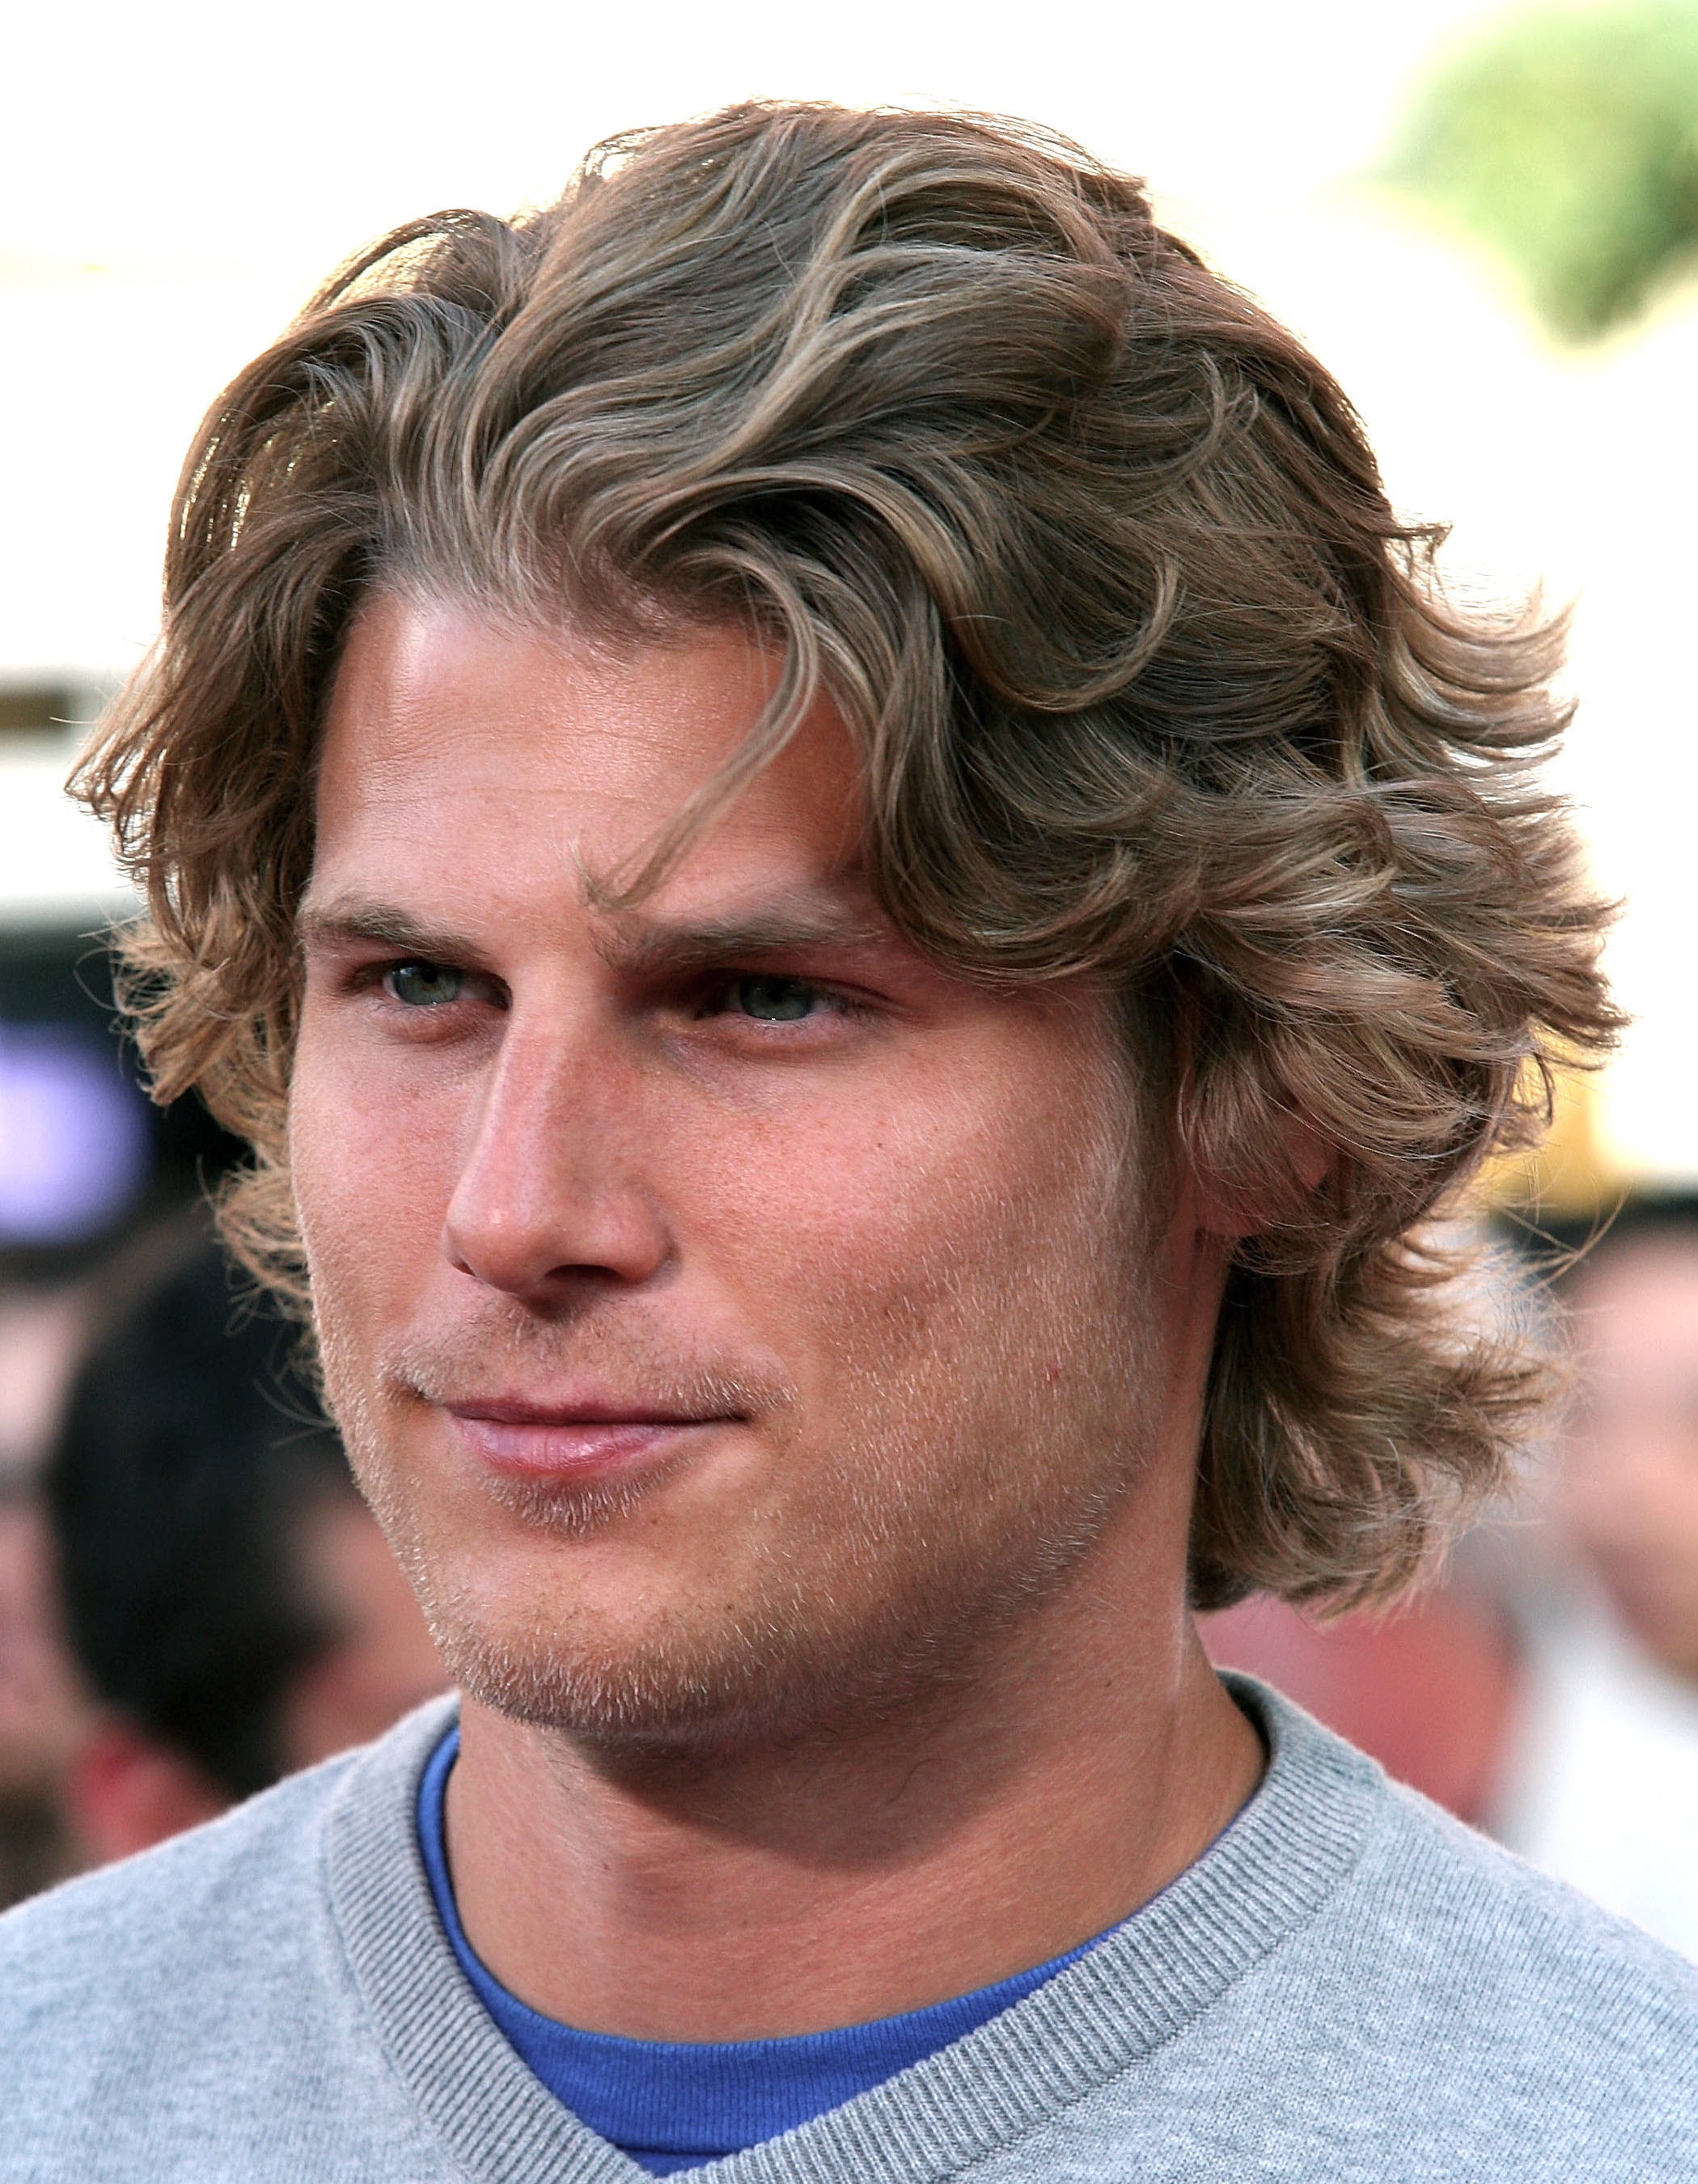 Best ideas about Mens Hairstyles For Curly Hair . Save or Pin Men's Long Hairstyles Now.